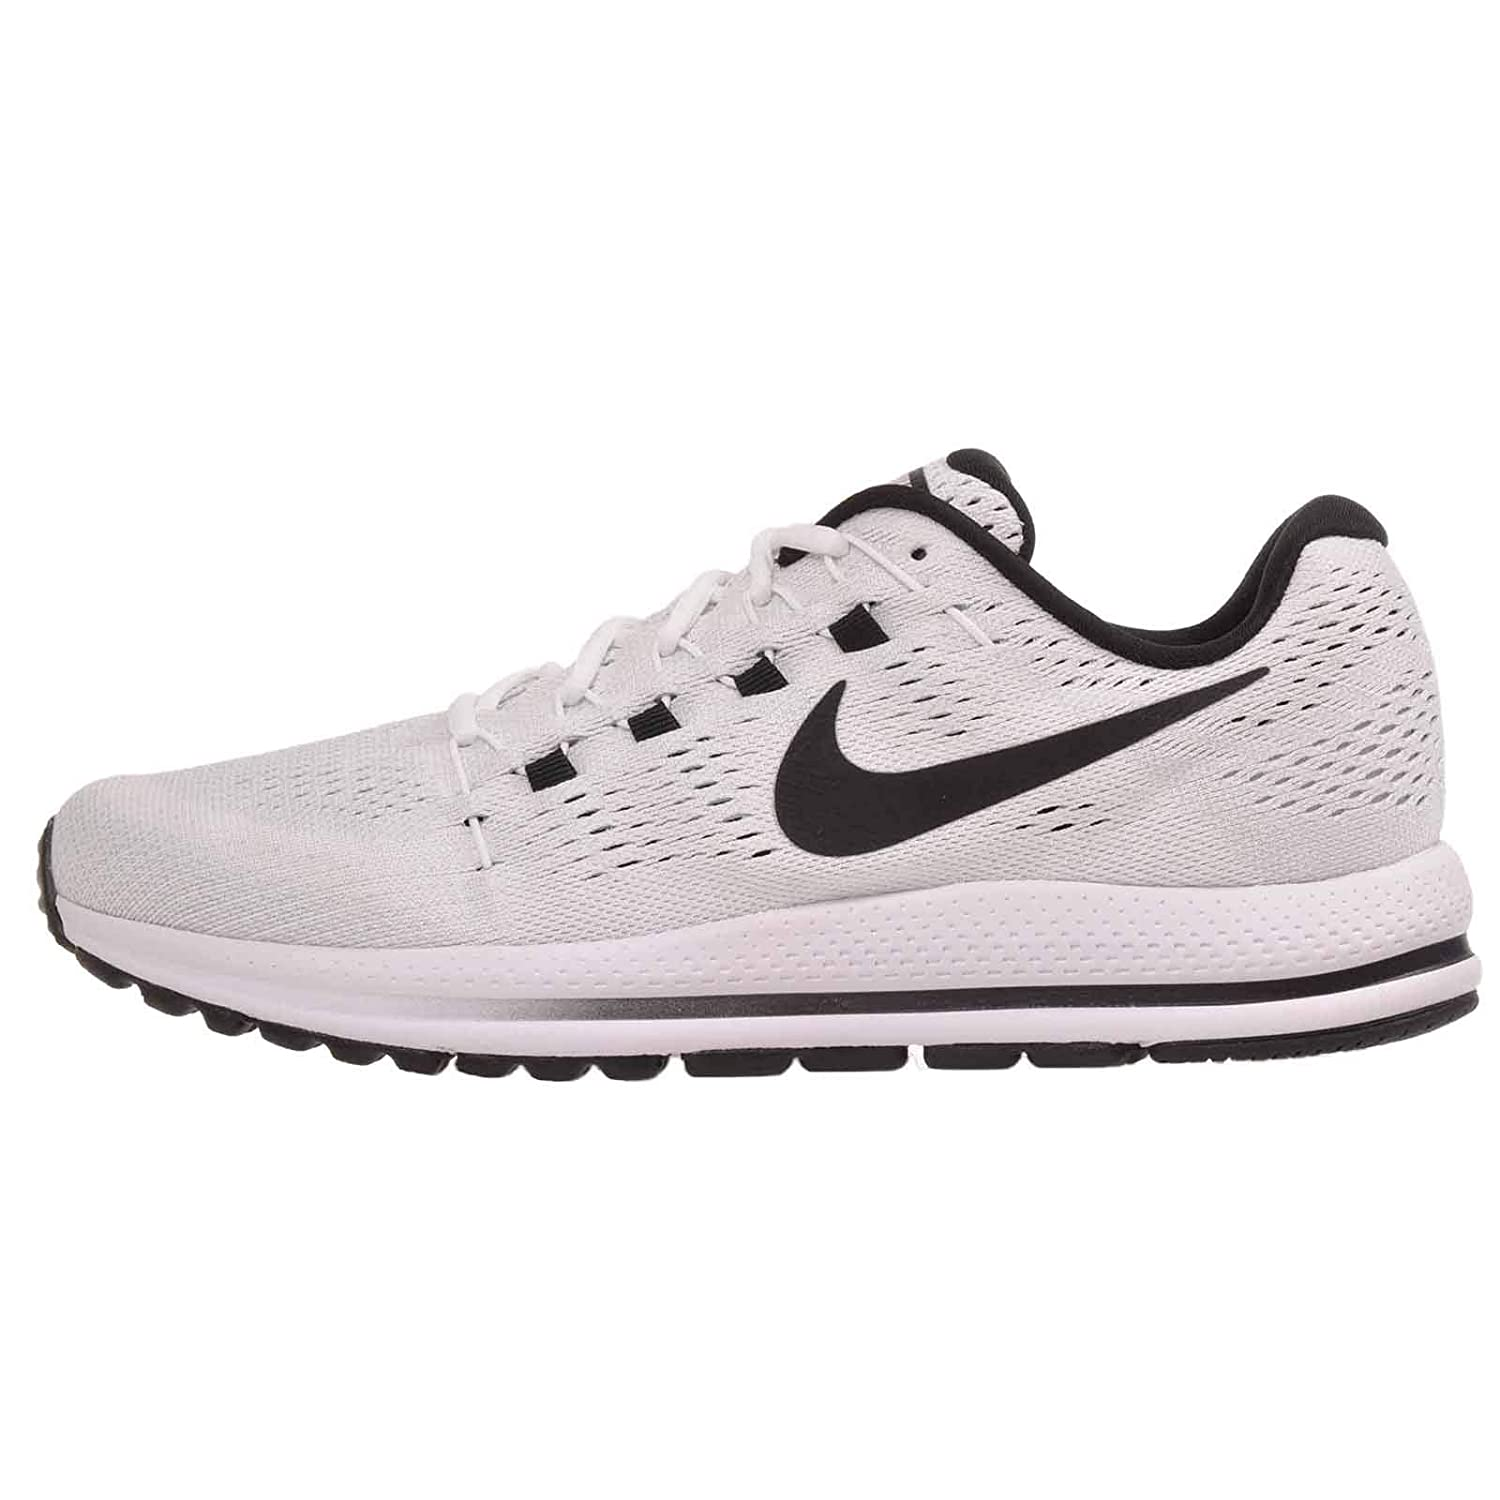 Nike Men's Air Zoom Vomero 12, WhiteBlack Pure Platinum, 14 M US